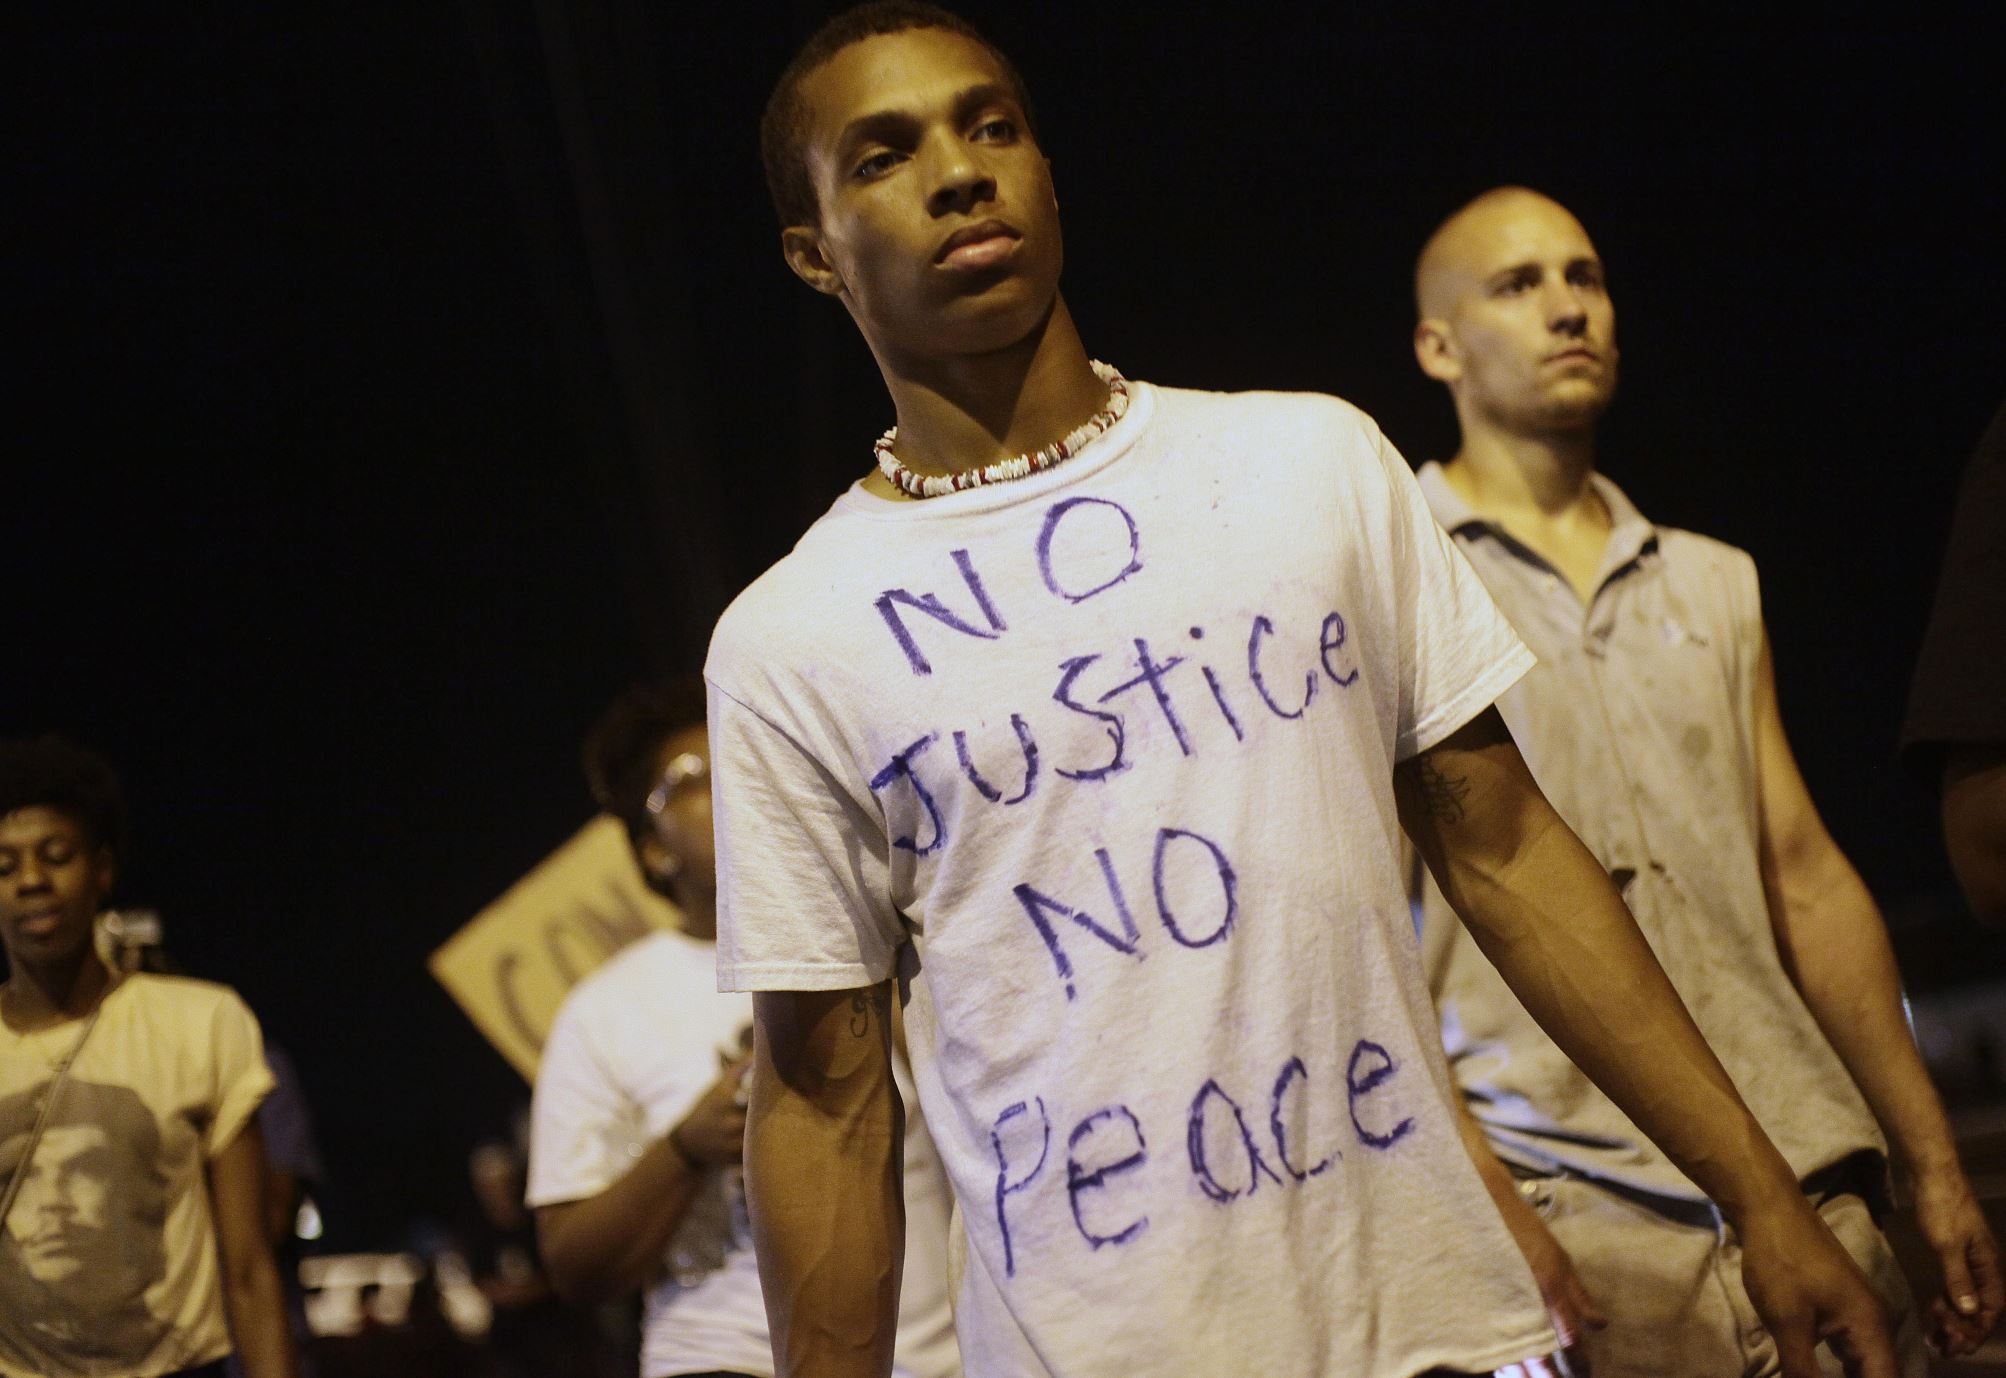 Demonstrators protest the shooting death of Michael Brown Wednesday, Aug. 20, 2014, in Ferguson, Missouri.